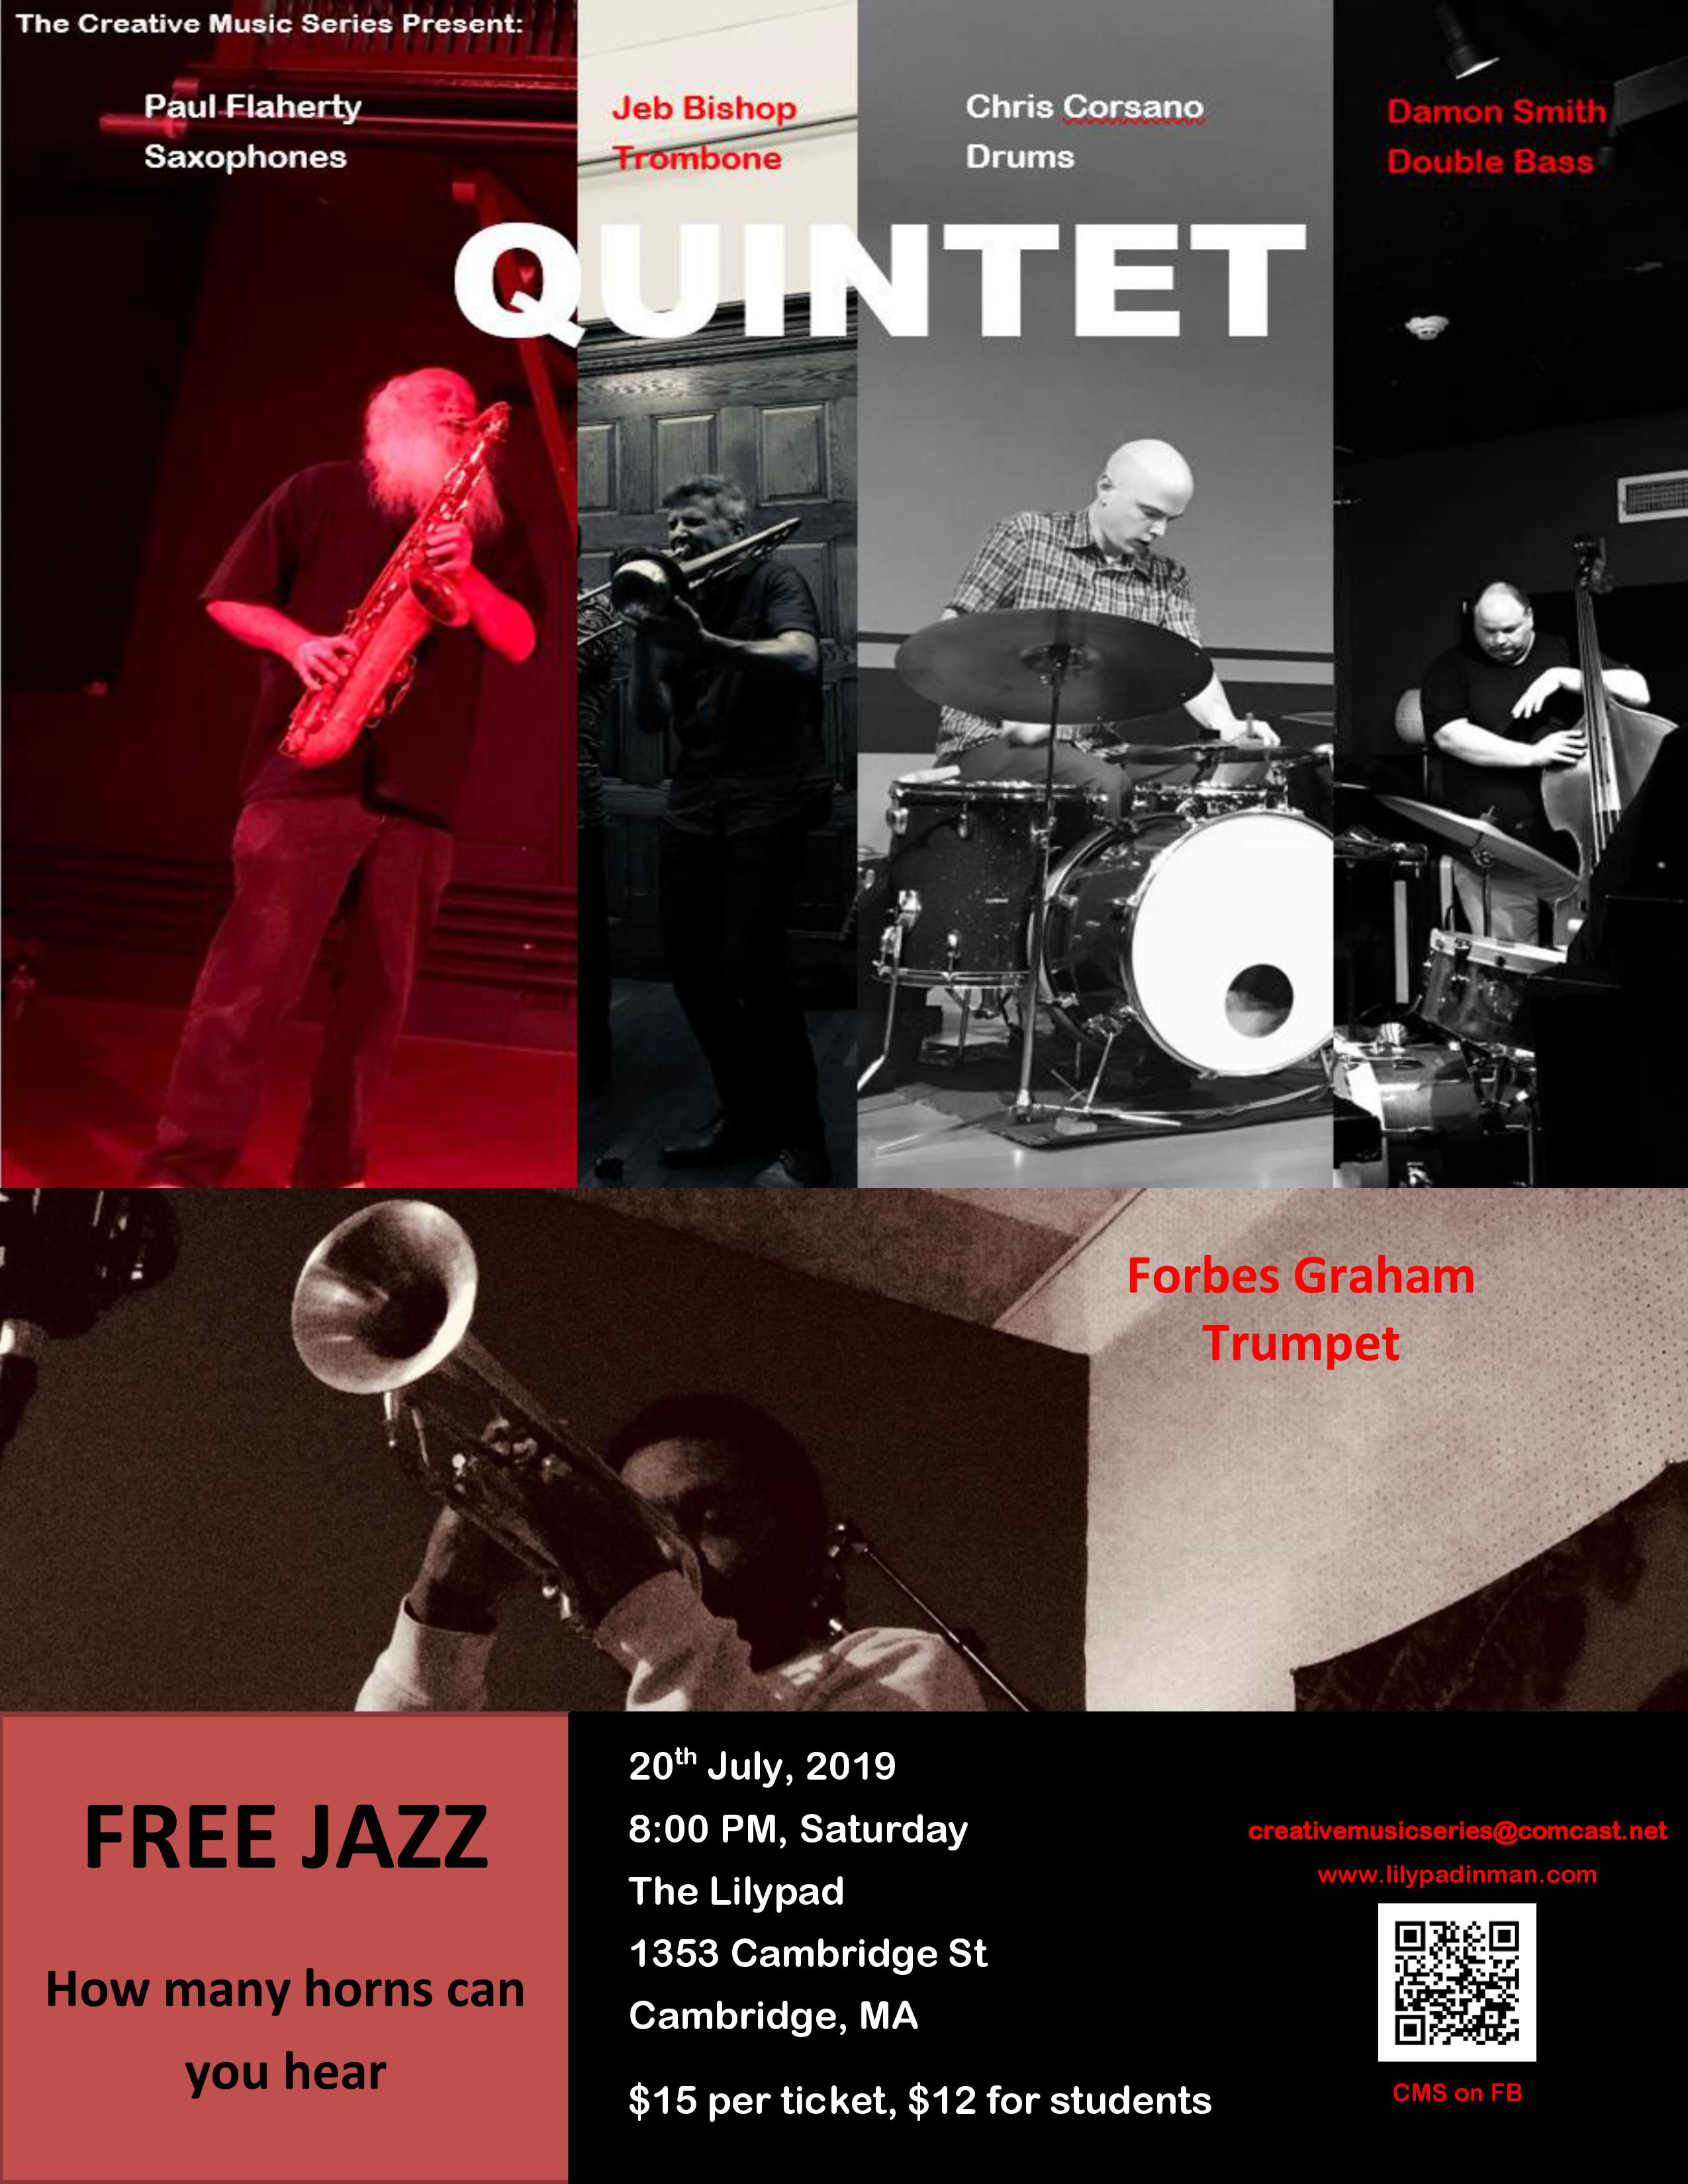 event image for More unrestricted, unrehearsed and creative music ala Free-Jazz